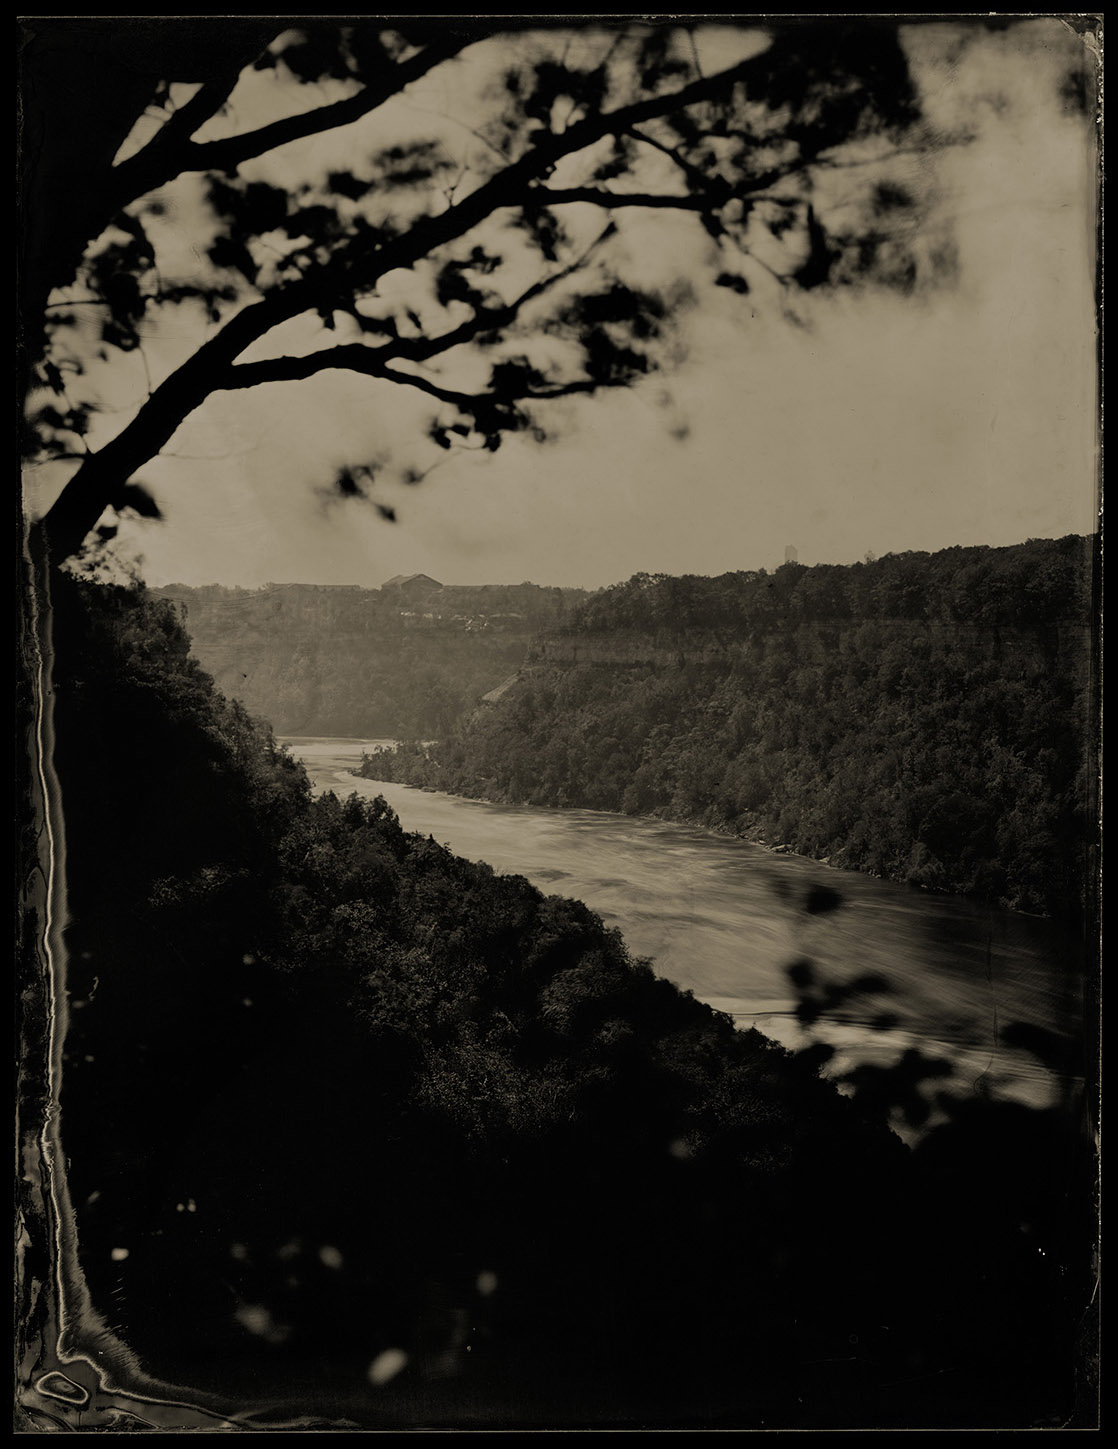 View from atop the Niagara Gorge, 2017 - By:Stephen Brule  www.stephenbrule.com